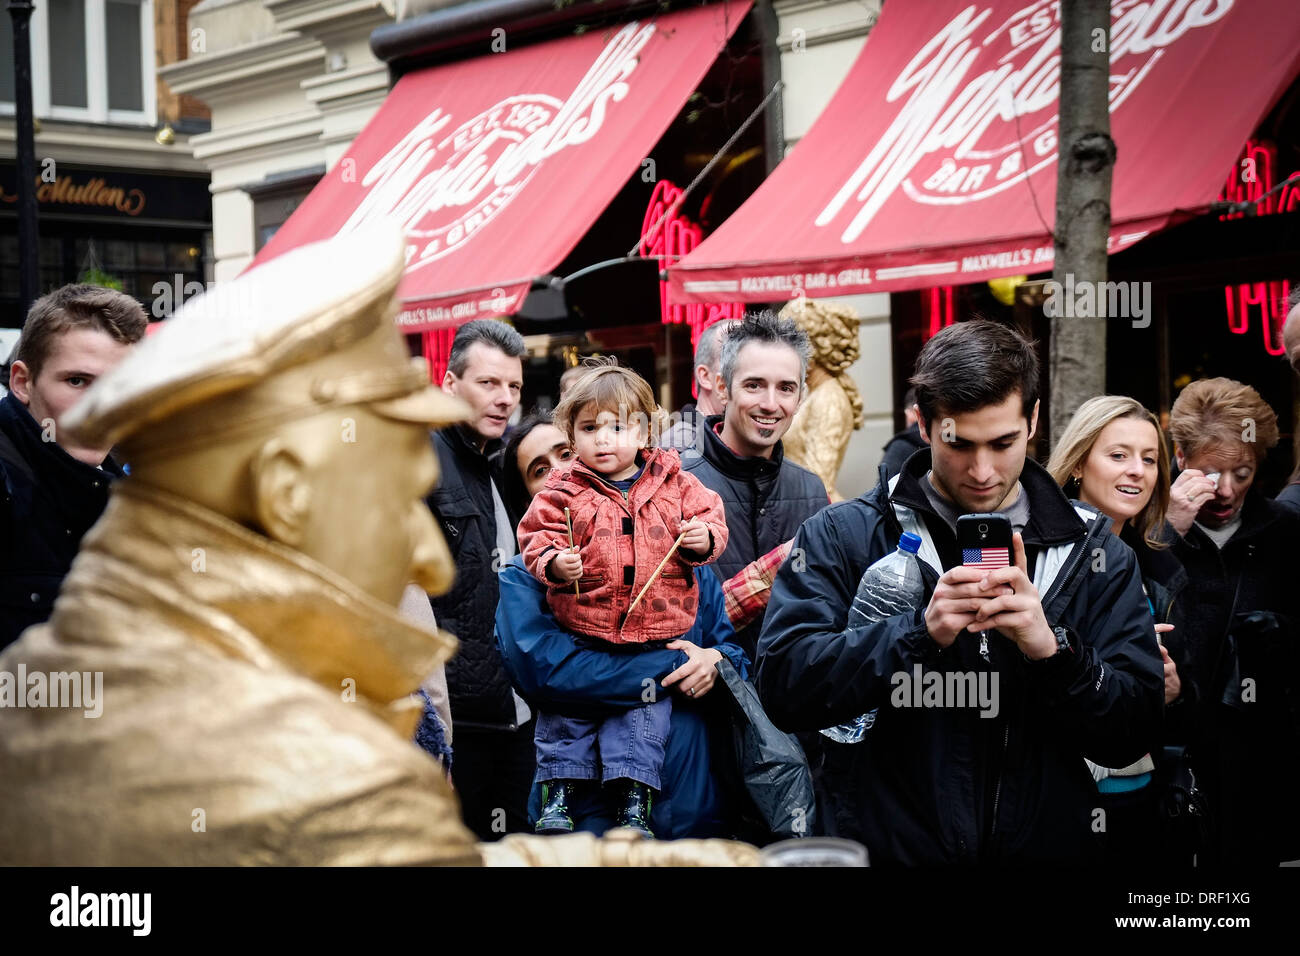 A street entertainer at Covent Garden. - Stock Image